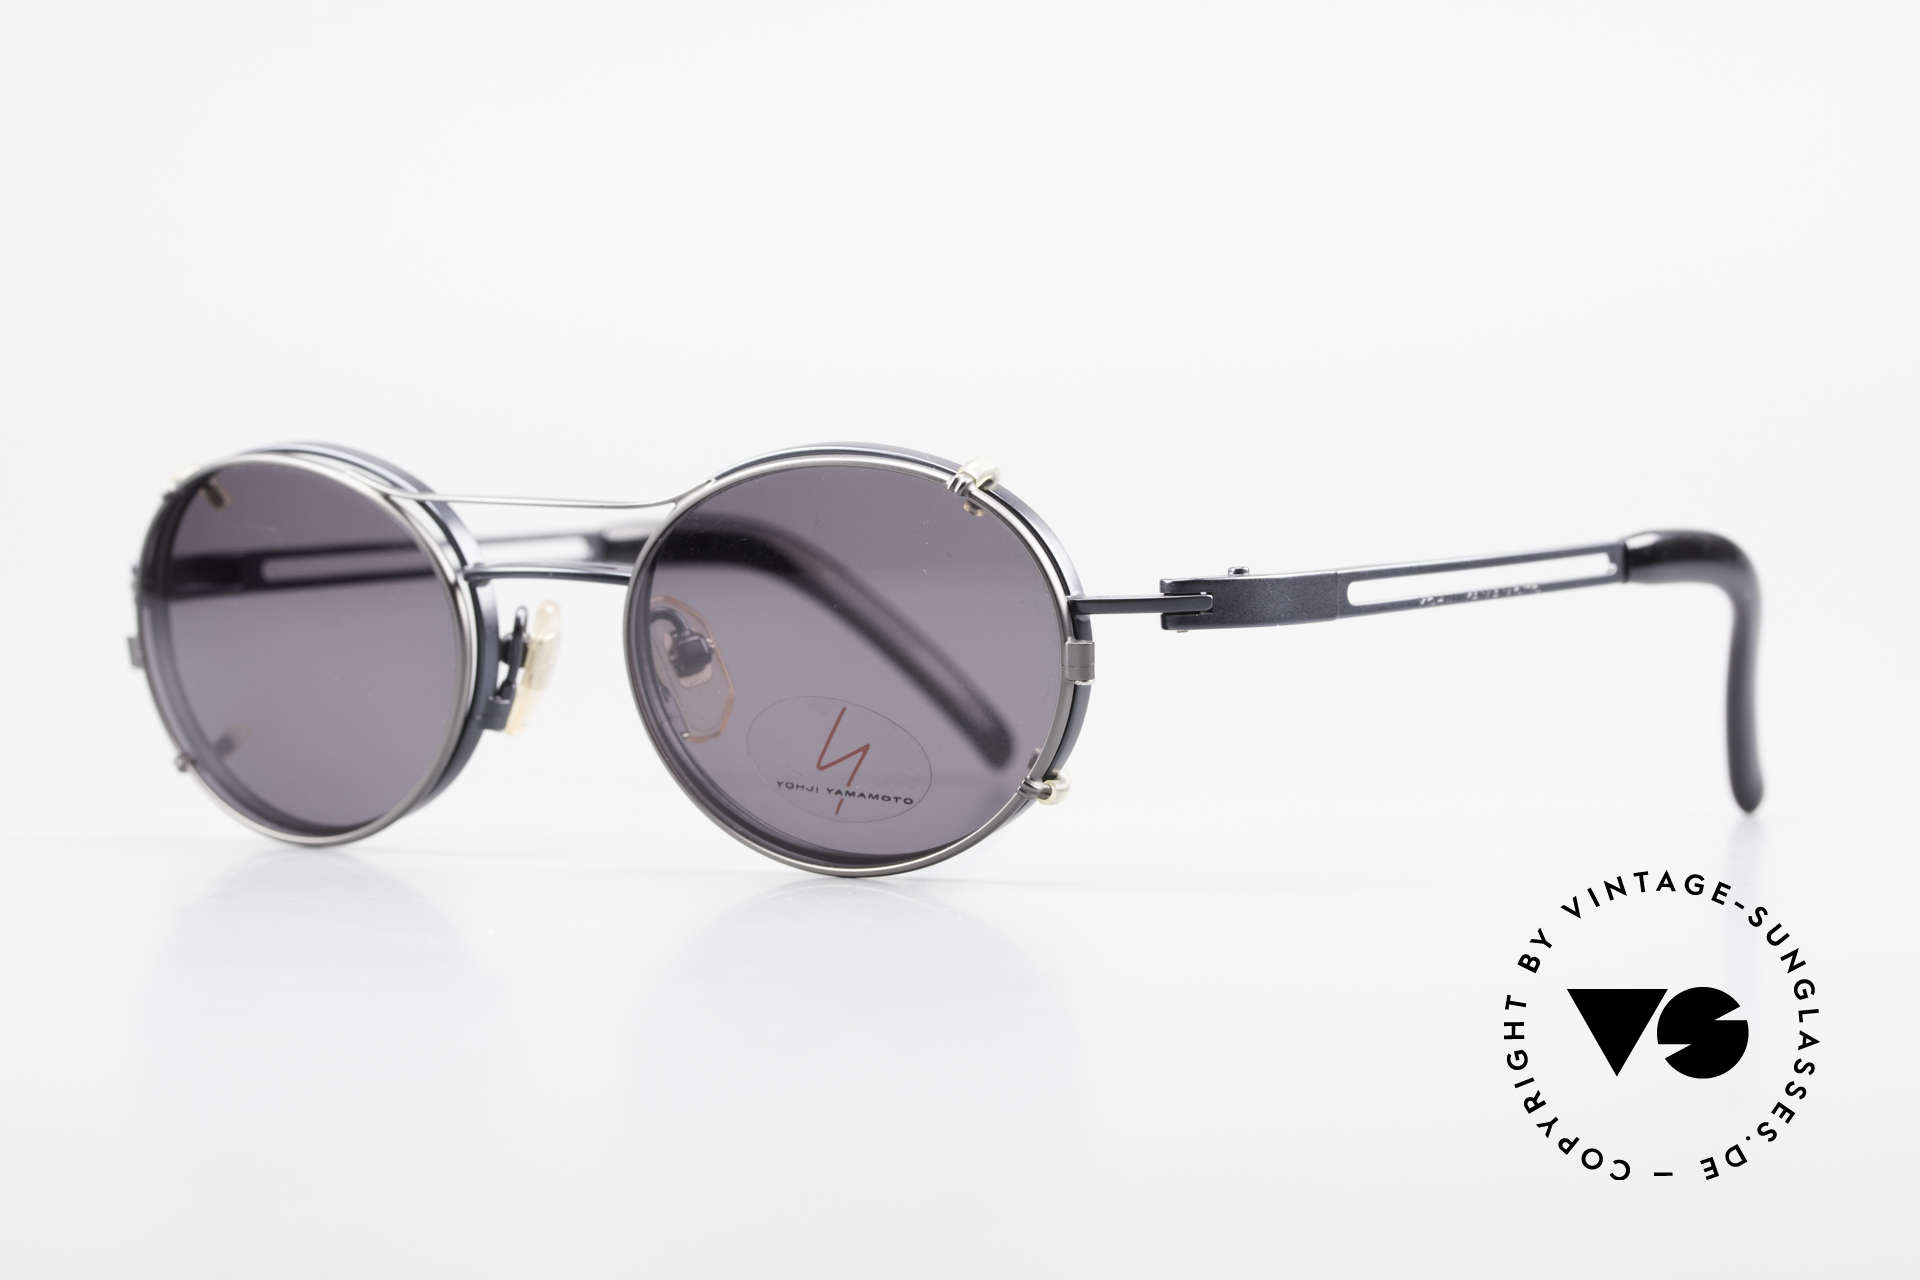 Yohji Yamamoto 51-6106 Oval Clip On Frame Blue Metal, frame = dark-blue metallic; Clip-On = titanium/gray, Made for Men and Women